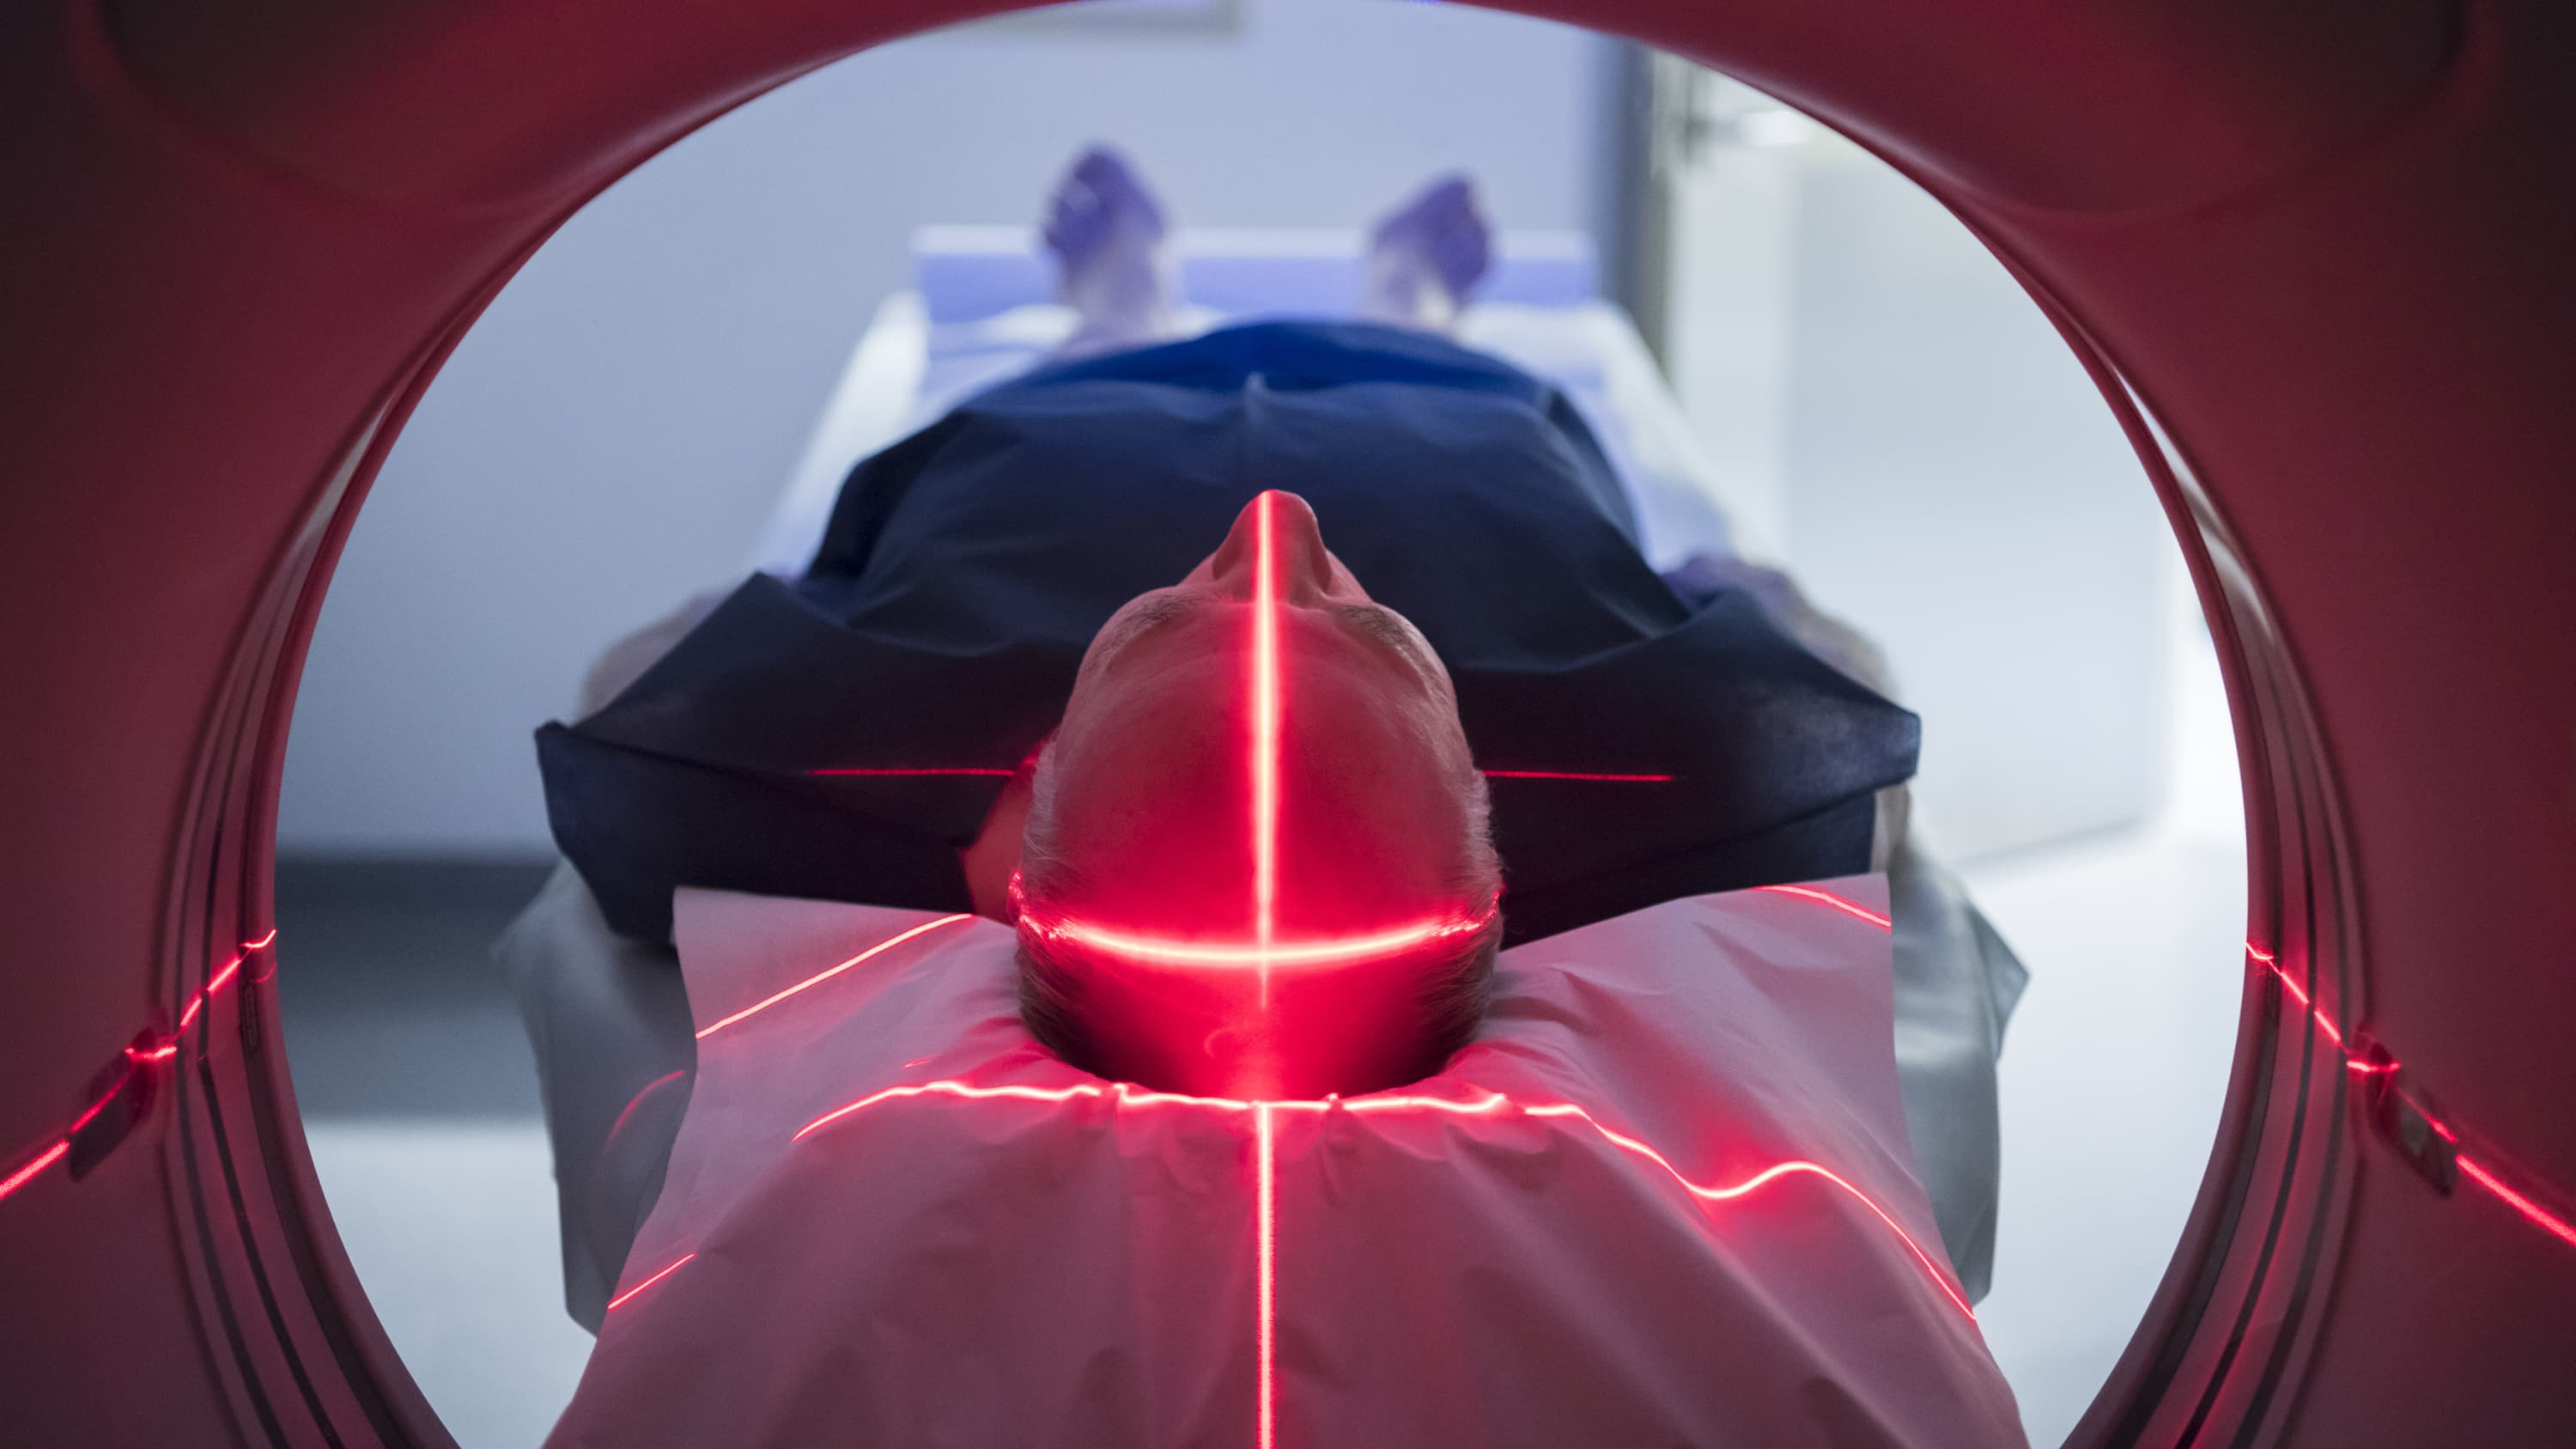 A patient in an MRI machine.